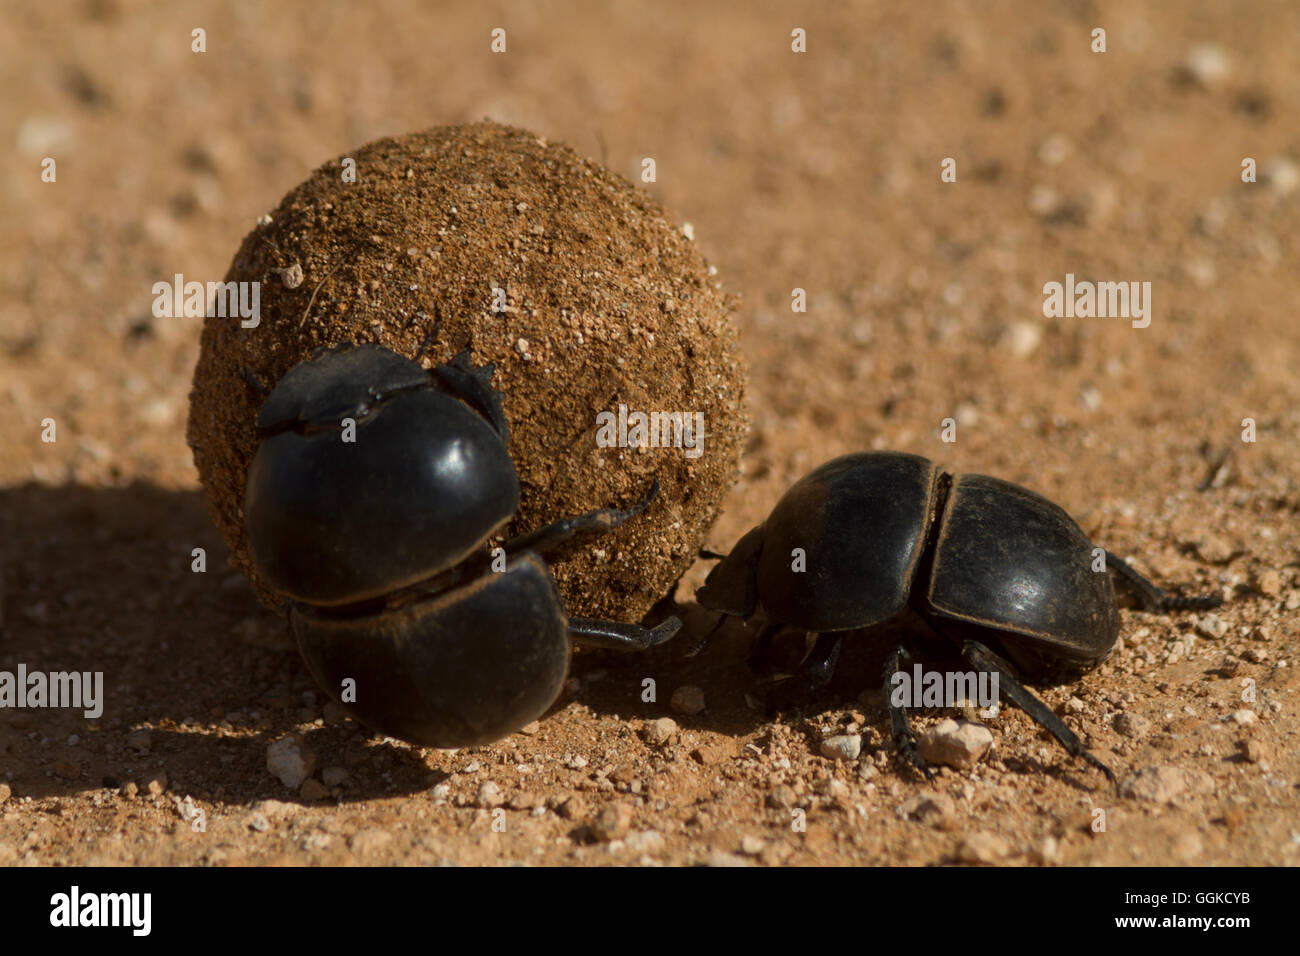 Dung Beetle, Addo Elephant National Park, Eastern Cape, Südafrika - Stock Image